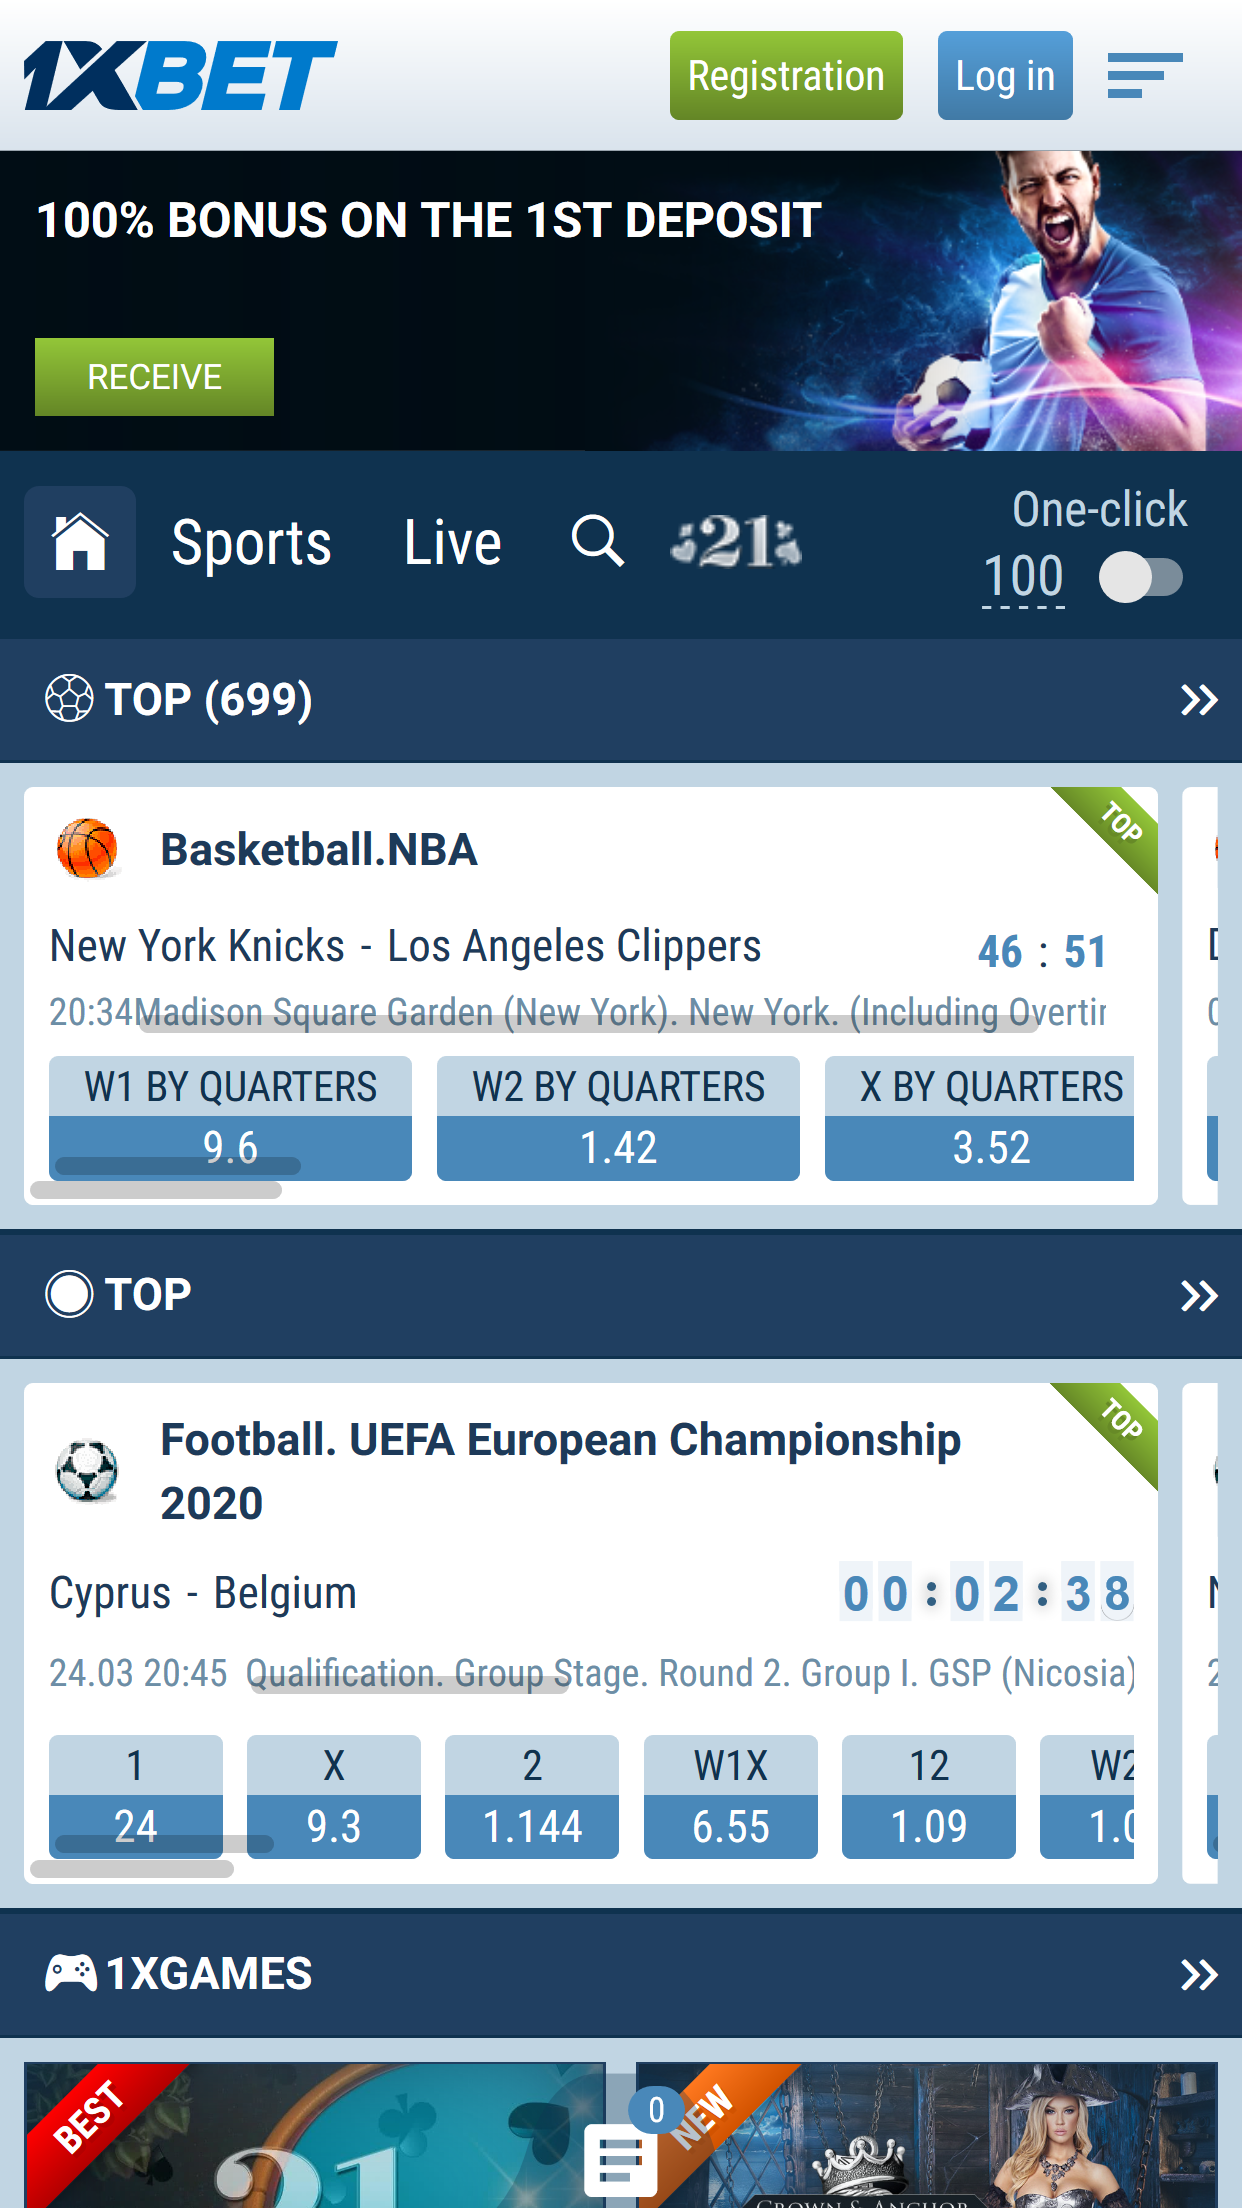 1xbet For Mobile